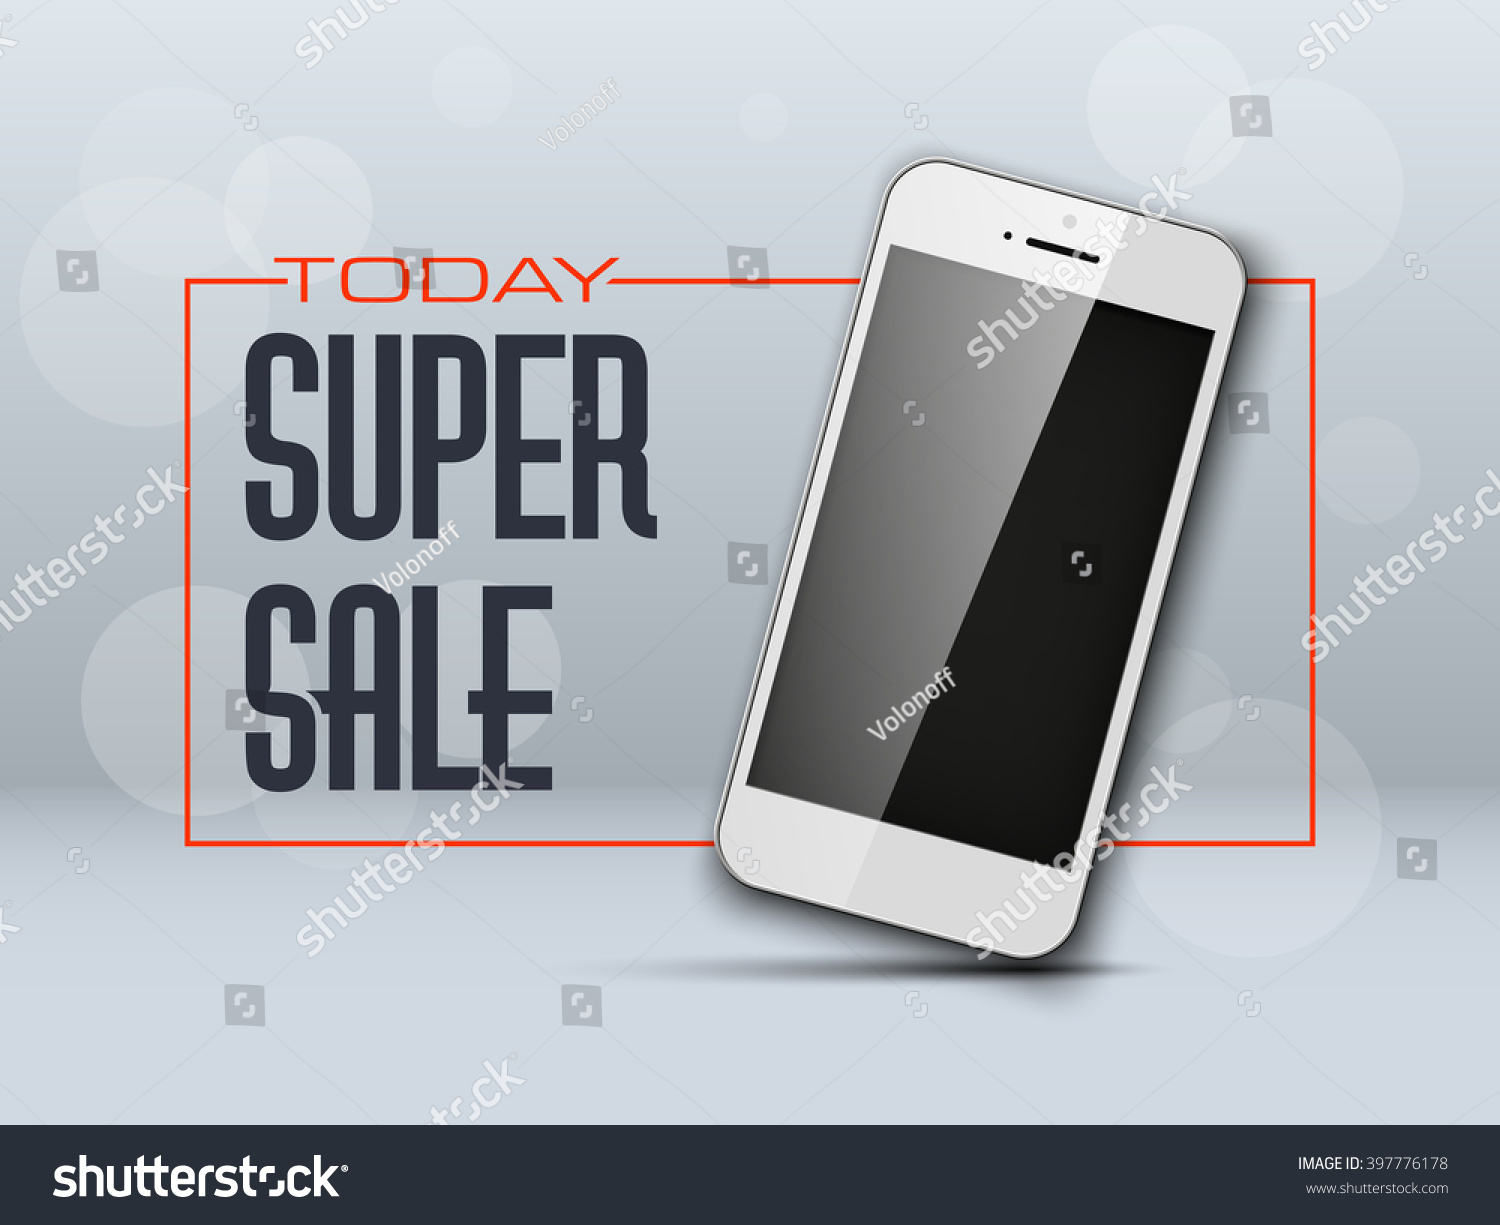 Erstaunlich Excellent Best Mobile Phone Discount Coupon Label Banner Vector Sale With  Mbel Discounter With Pico Mbel With Mbel Sale With Outdoor Mbel Sale